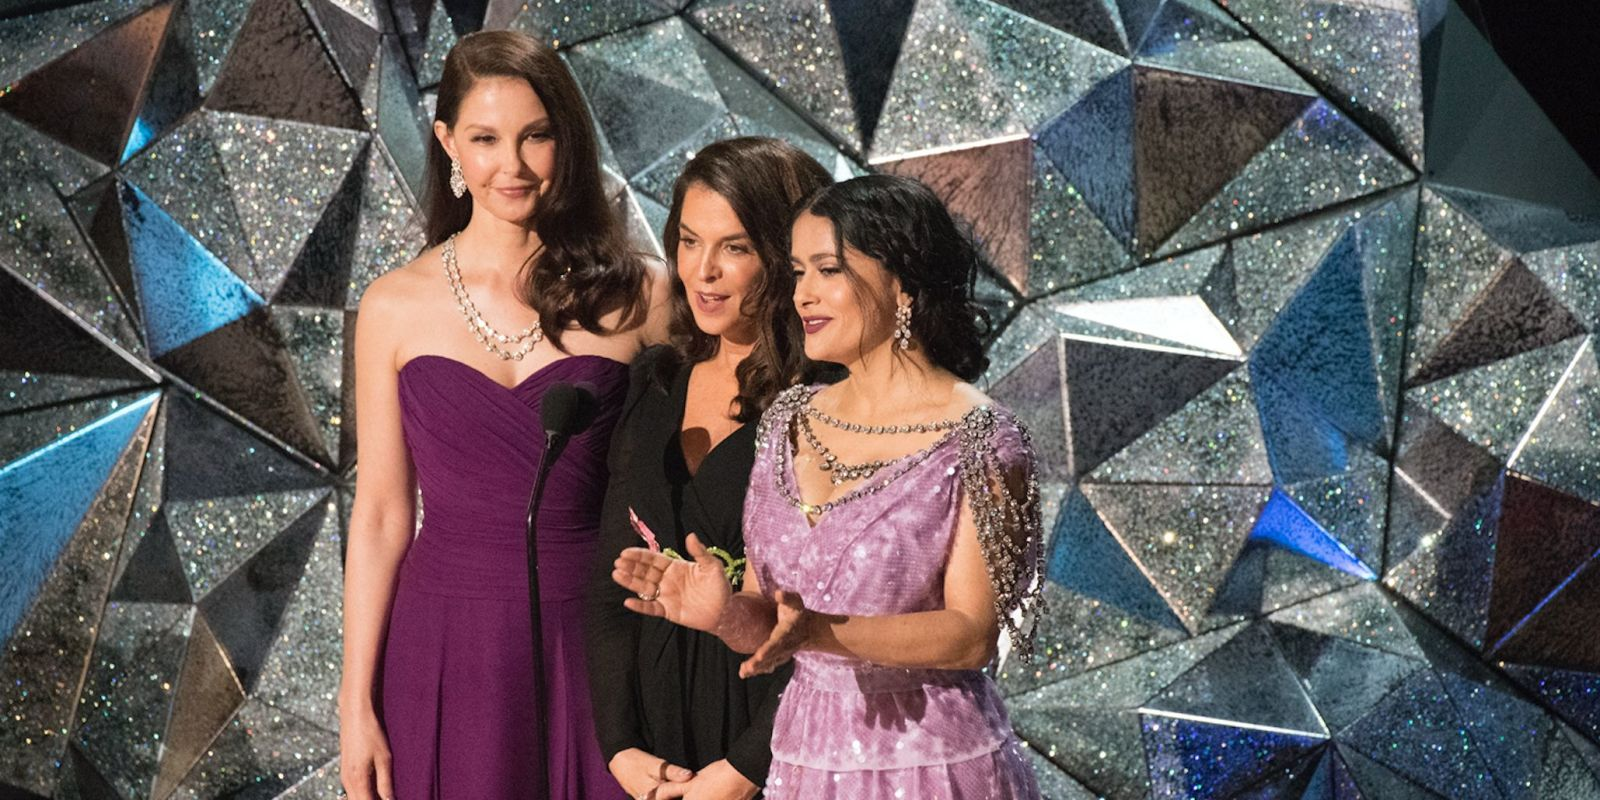 Oscars 2018: Ashley Judd and Salma Hayek tell Hollywood that Time's Up in empowering speech